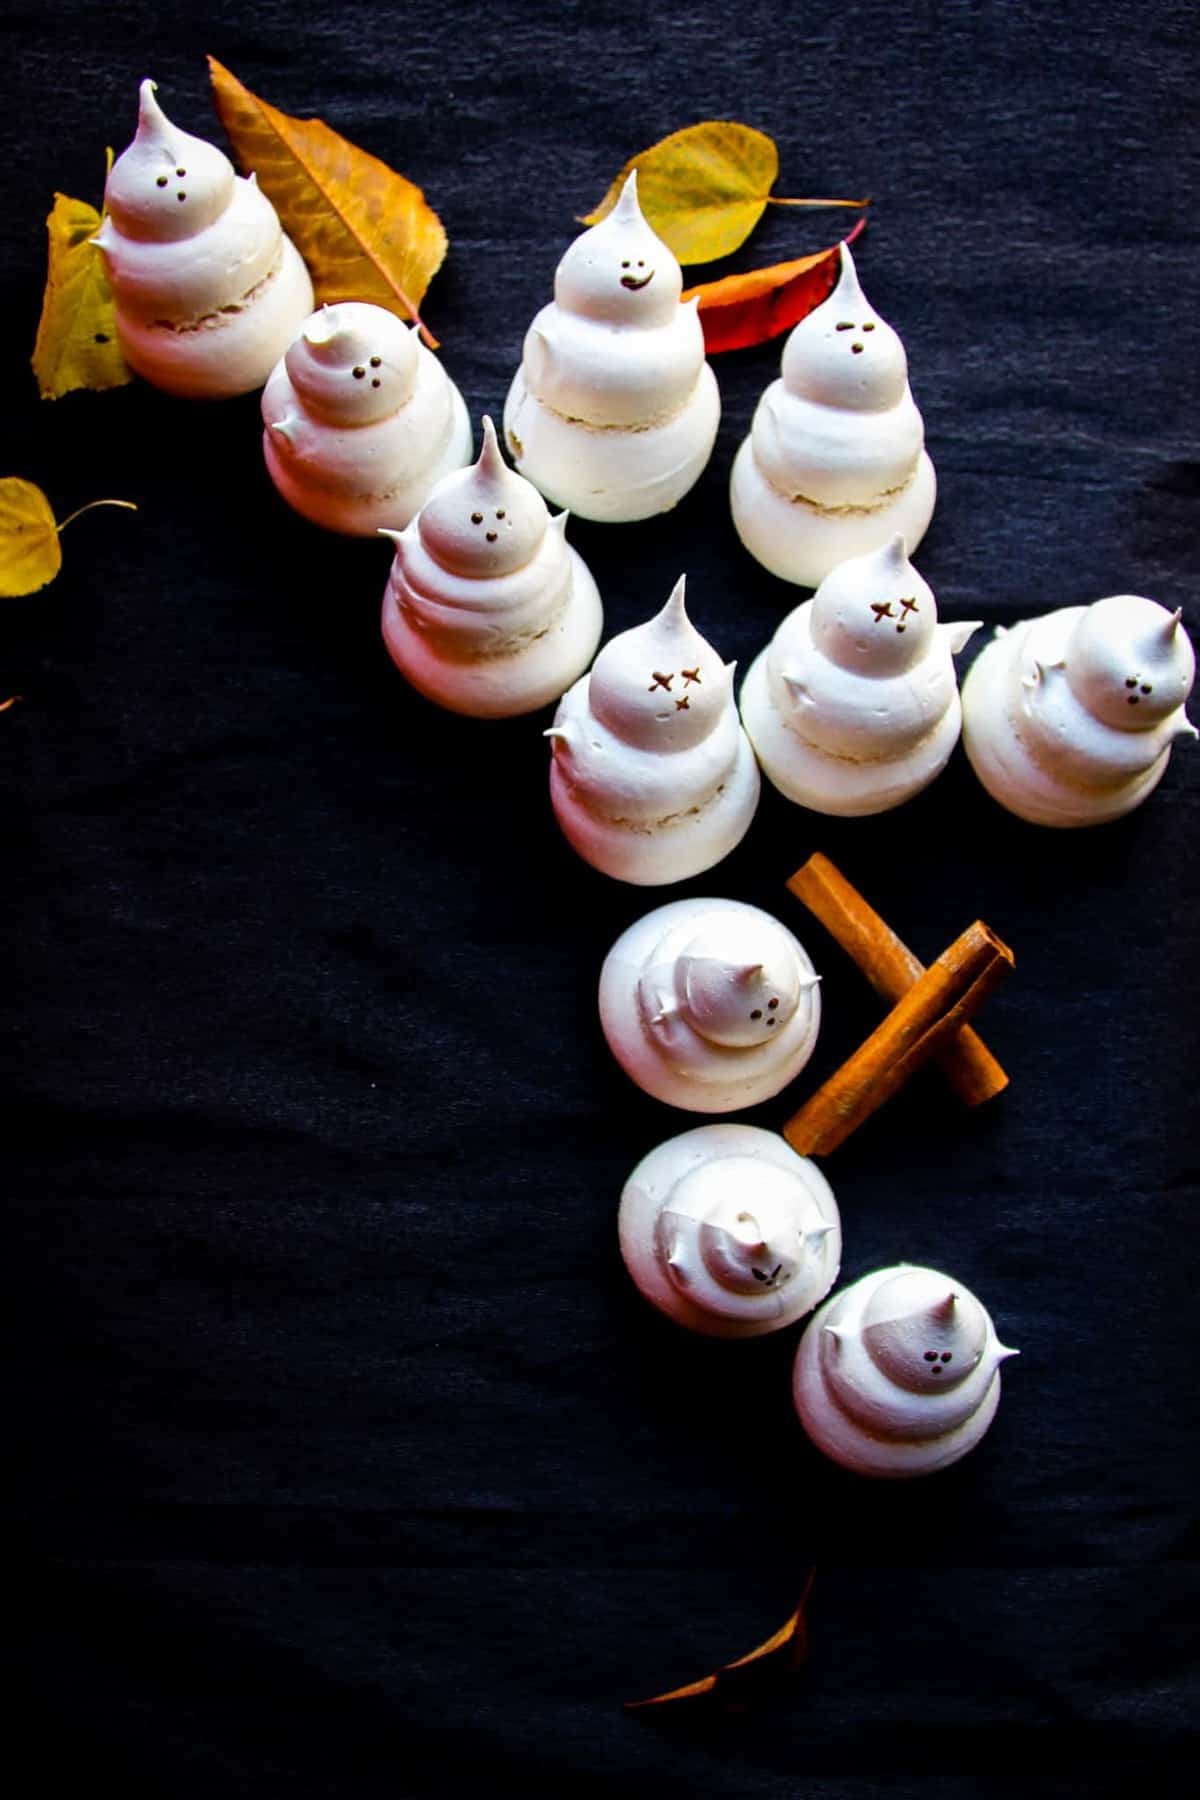 A recipe for cinnamon ghost meringue that's easily the most hilarious Halloween dessert.